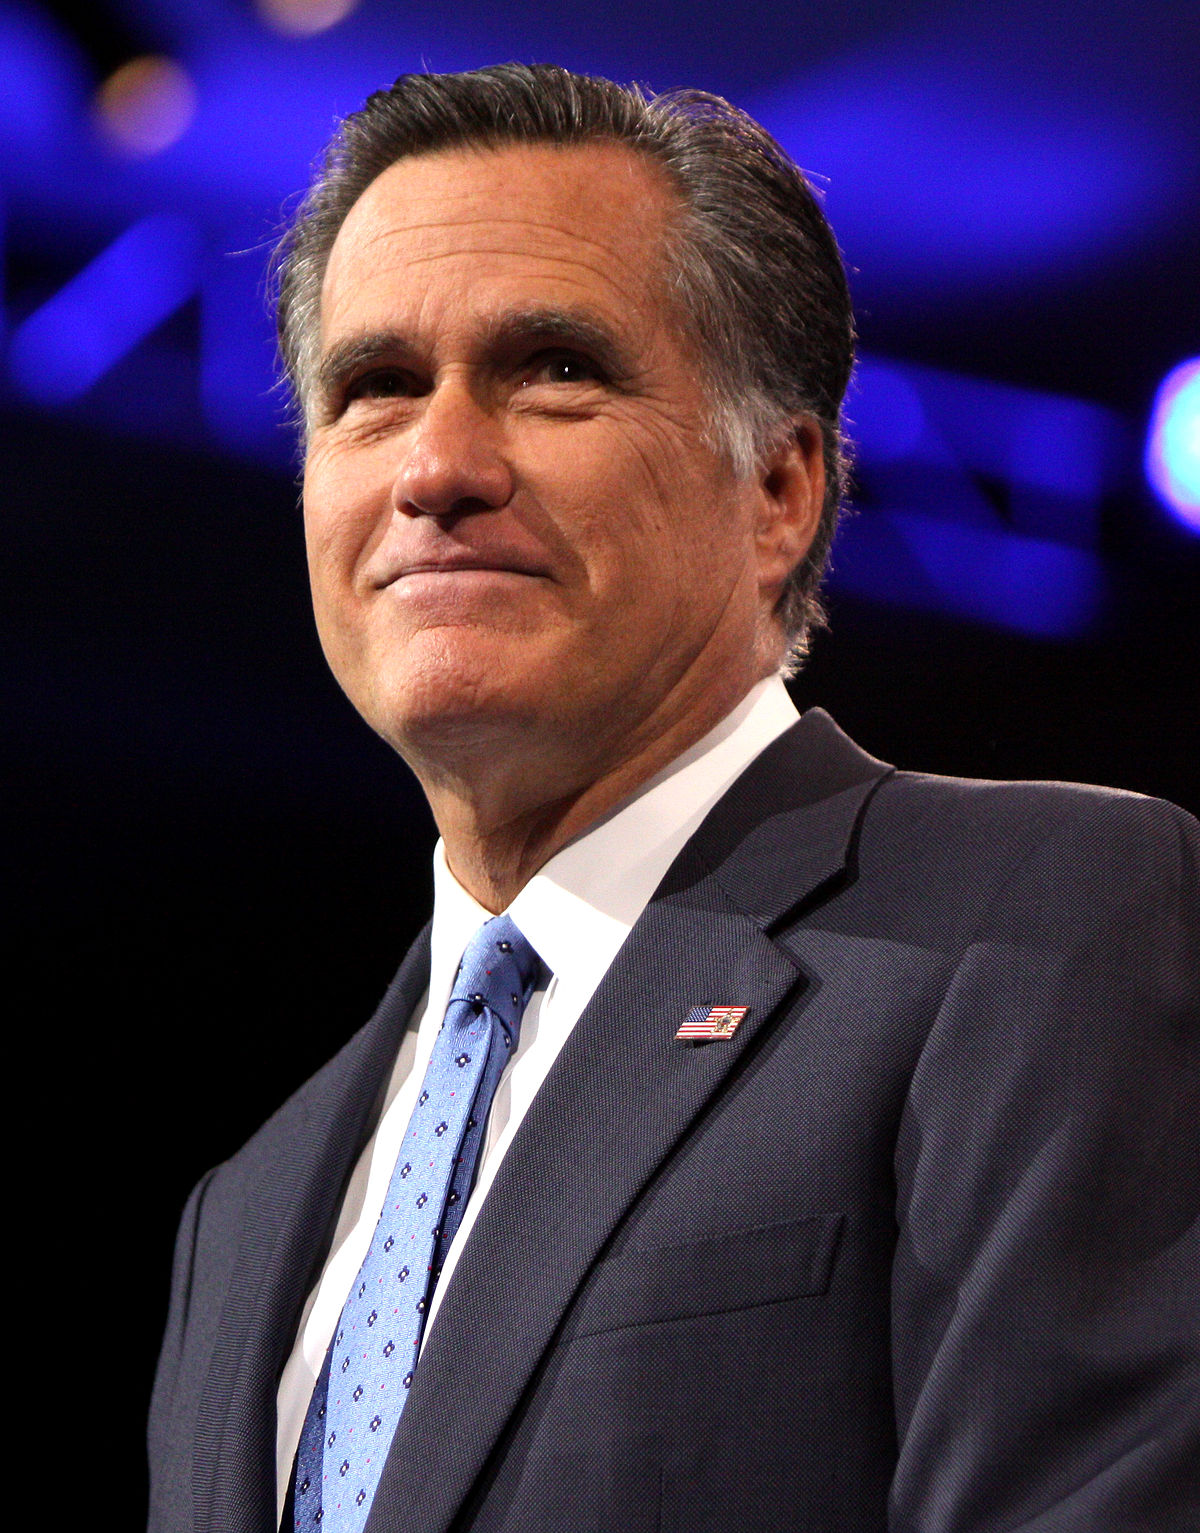 Former Massachusetts Governor and 2012 Republican Presidential nominee Mitt Romney.